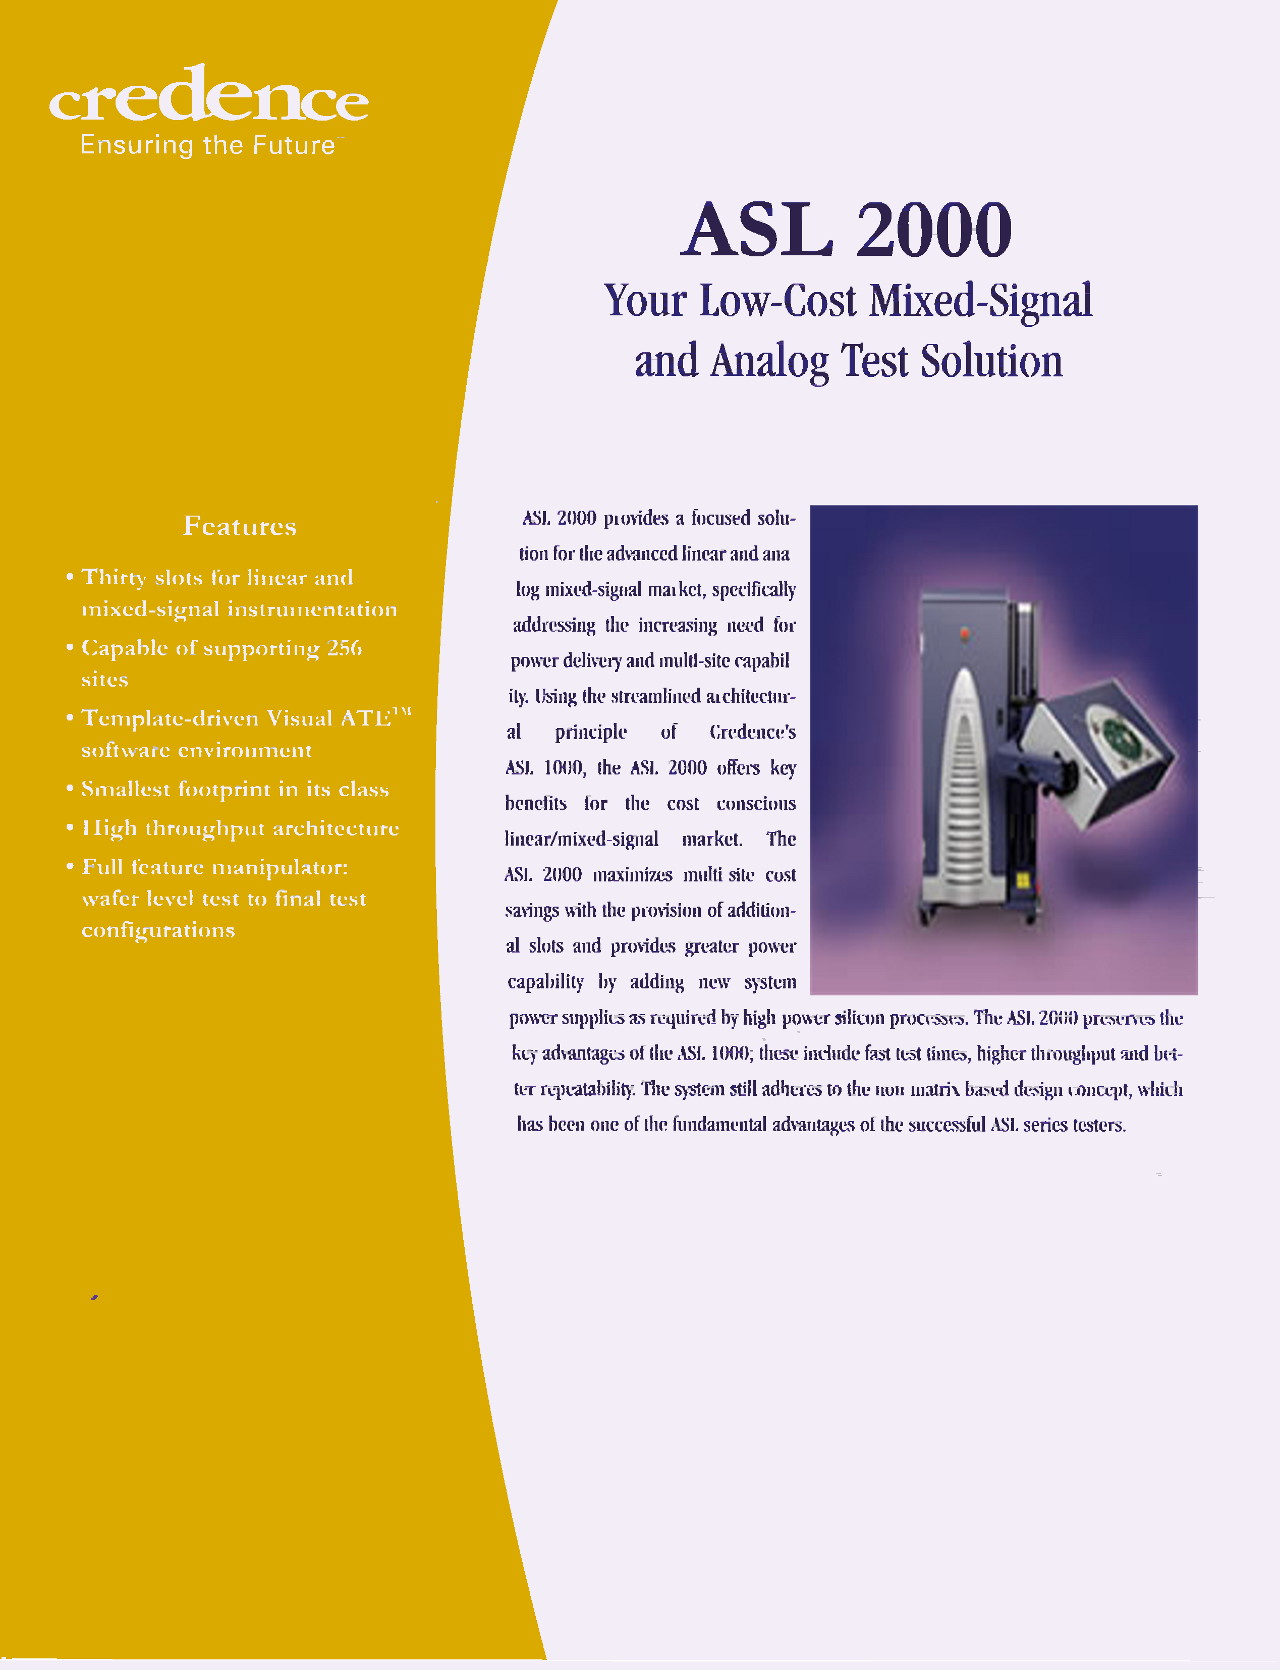 Development of Credence ASL2000 Mixed Signal Test Station